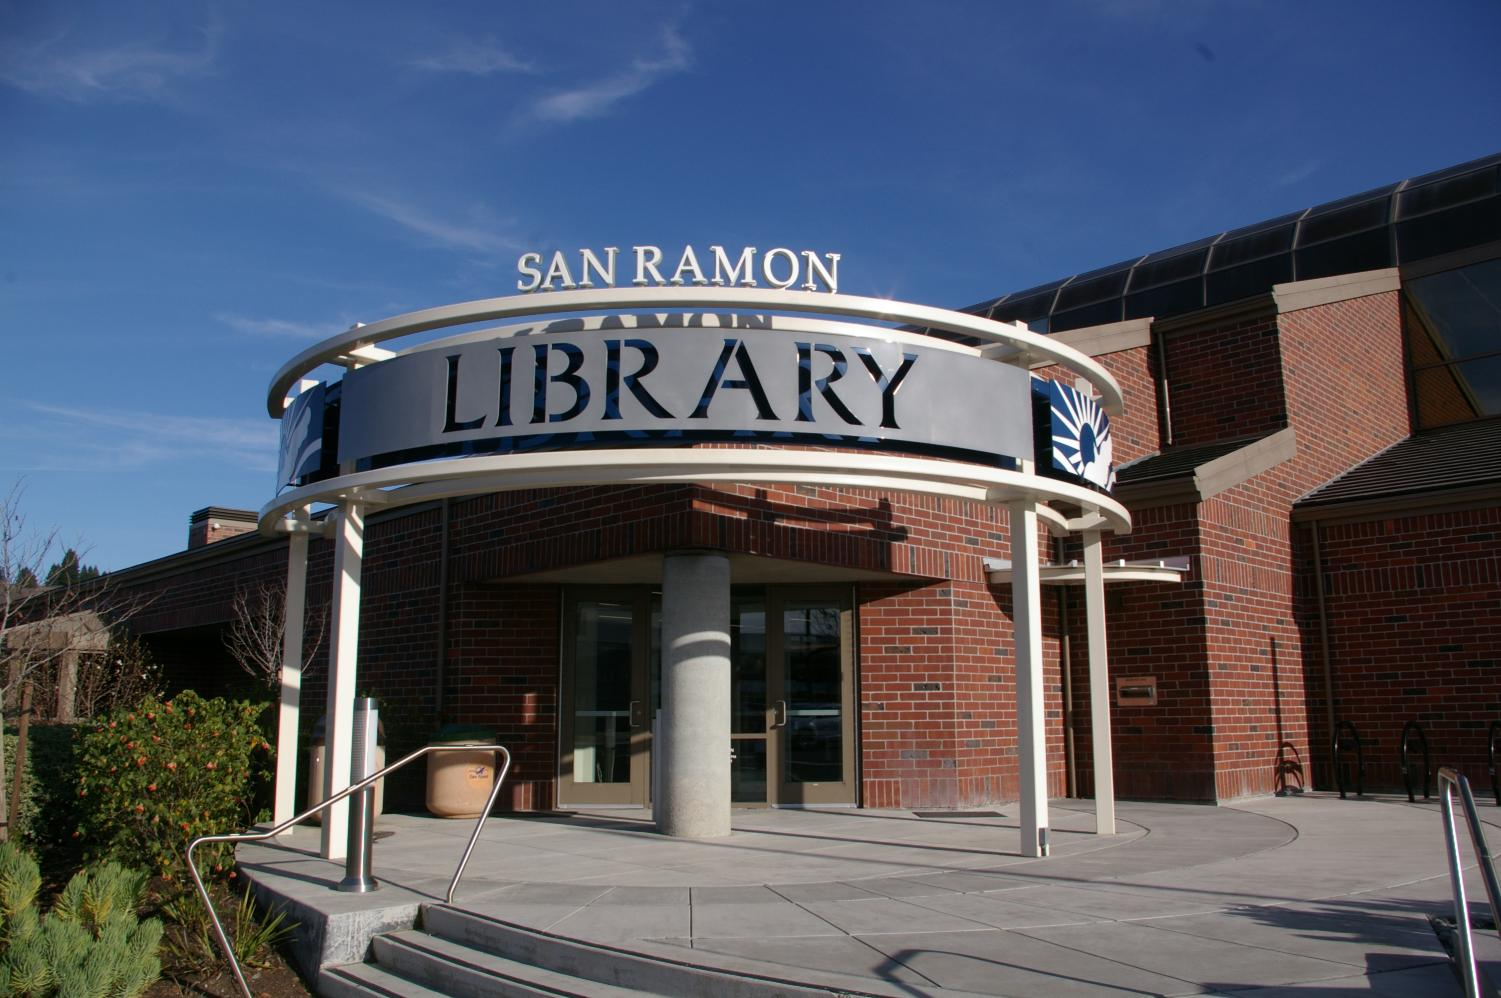 The San Ramon Library was among the libraries throughout Contra Costa County impacted by a ransomware attack.